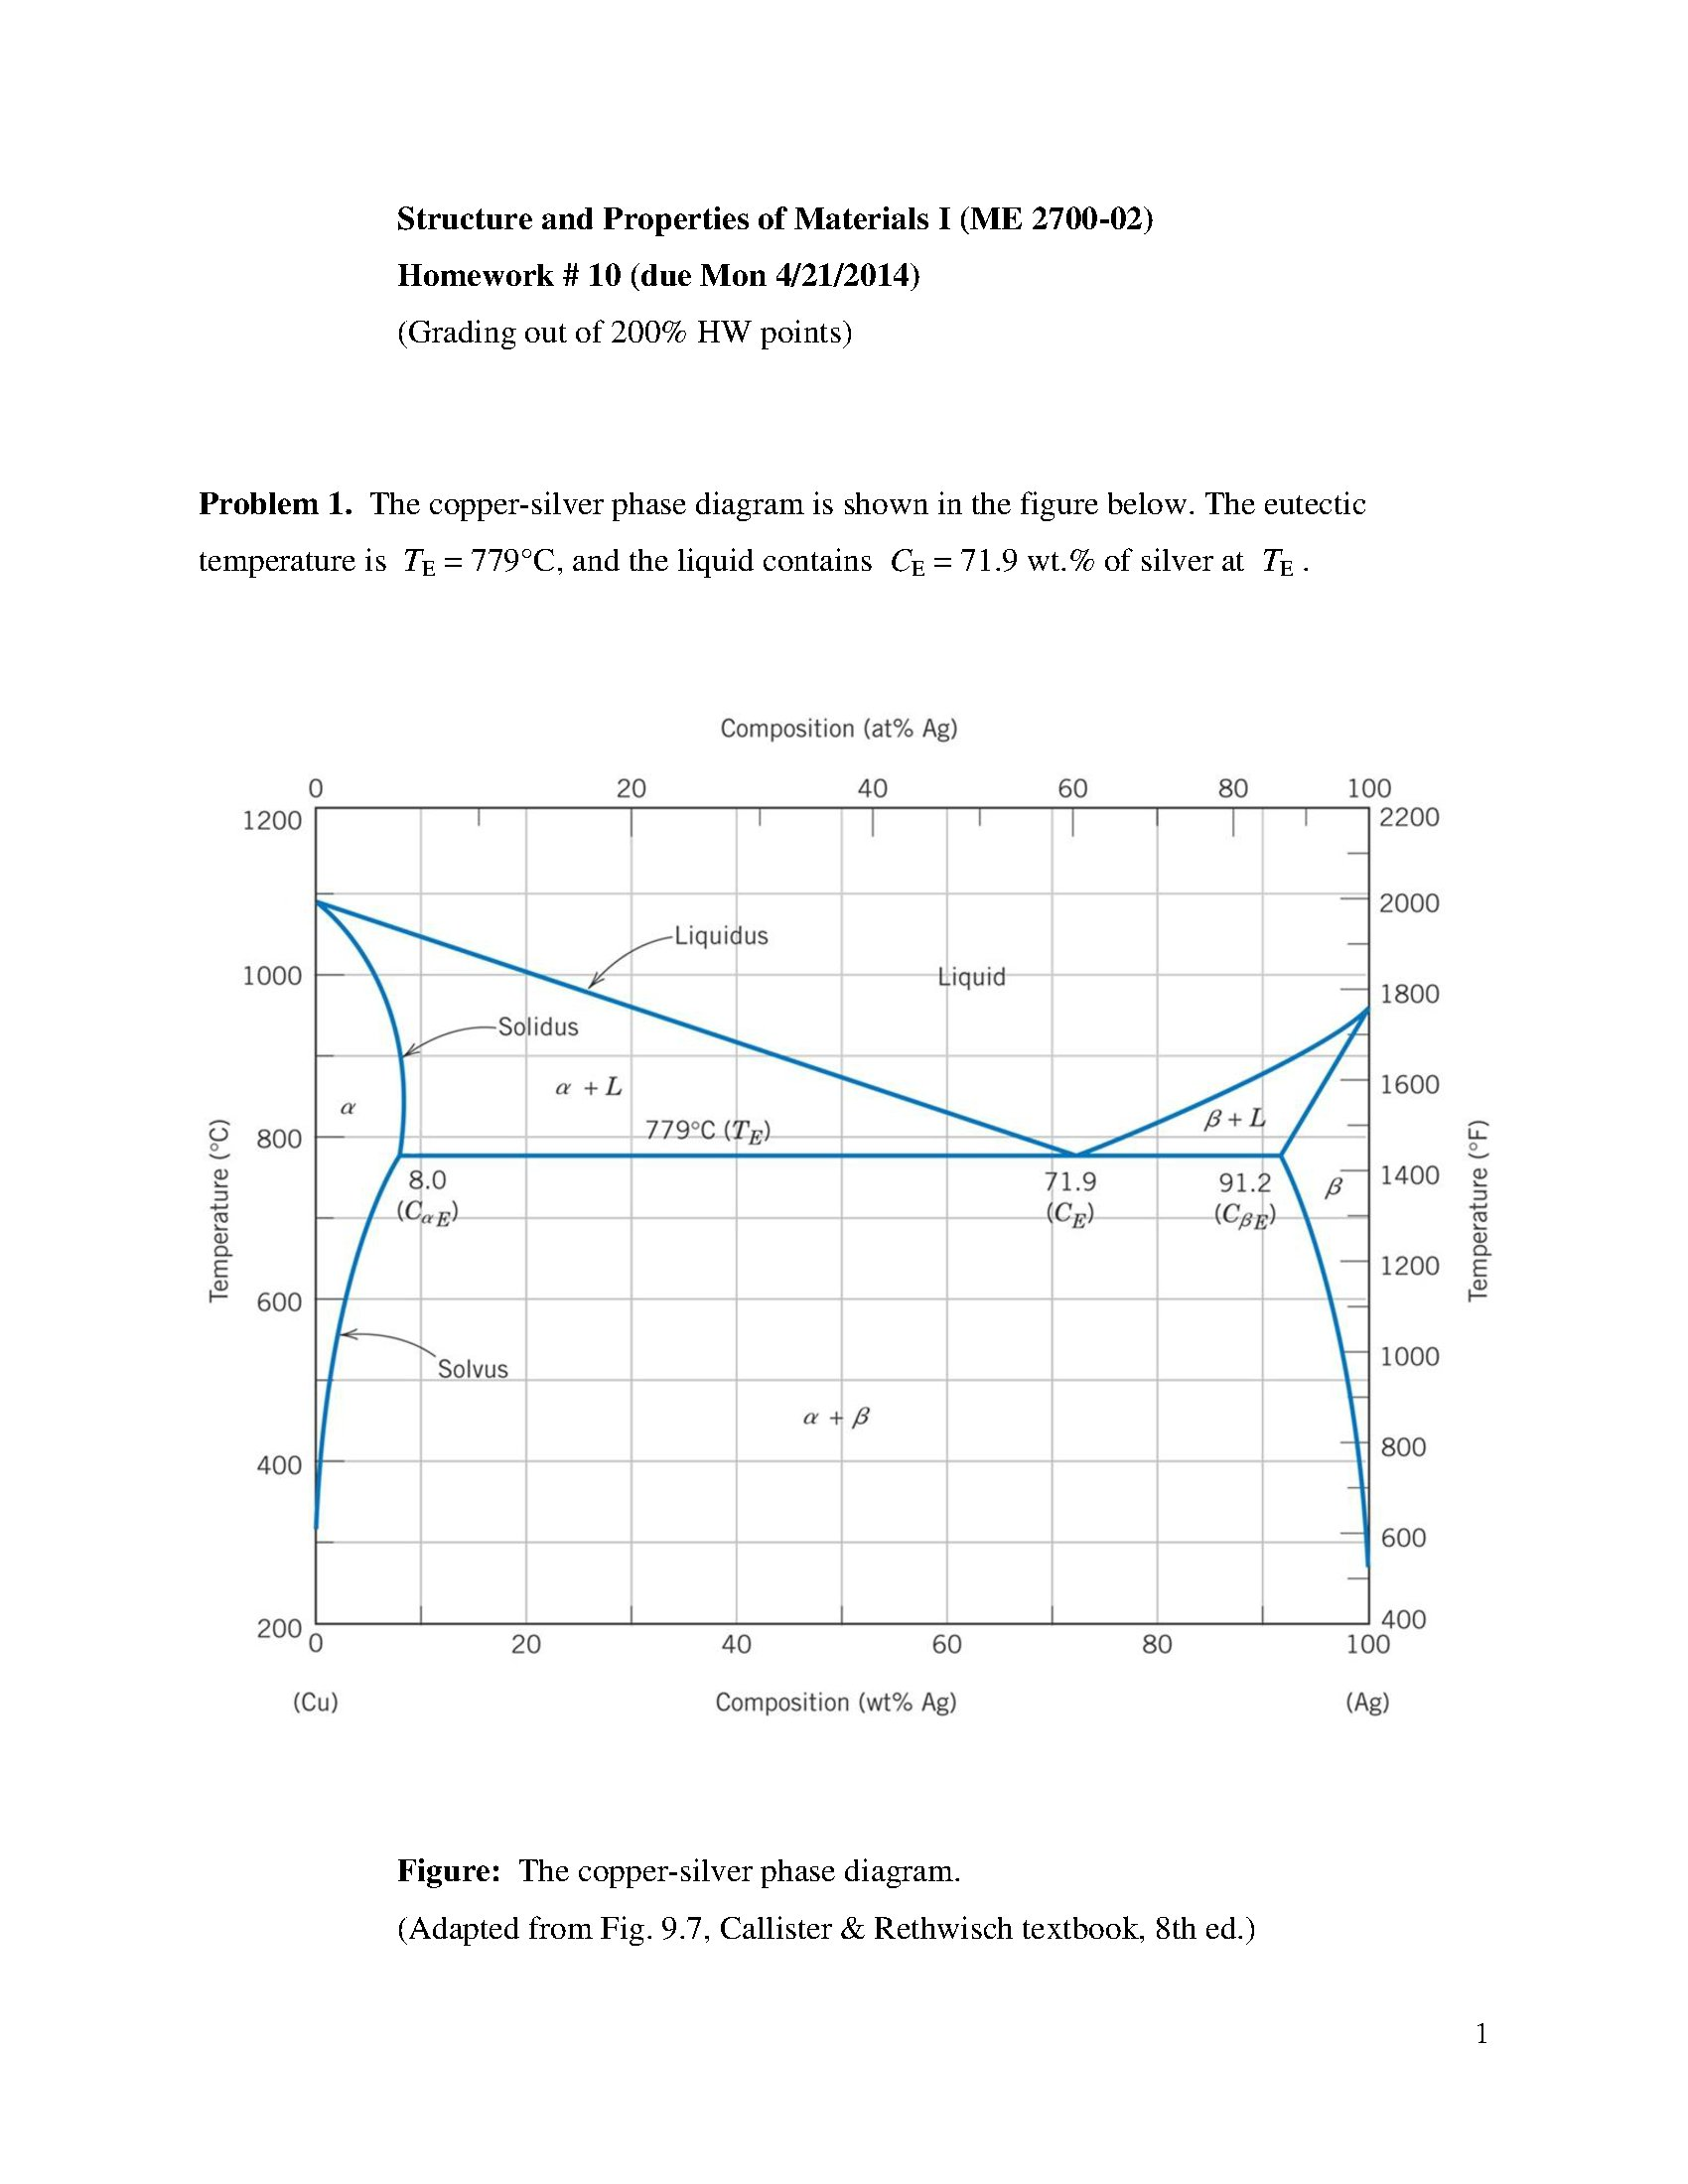 The copper silver phase diagram is shown in the fi chegg question the copper silver phase diagram is shown in the figure below the eutectic temperature iste 779 pooptronica